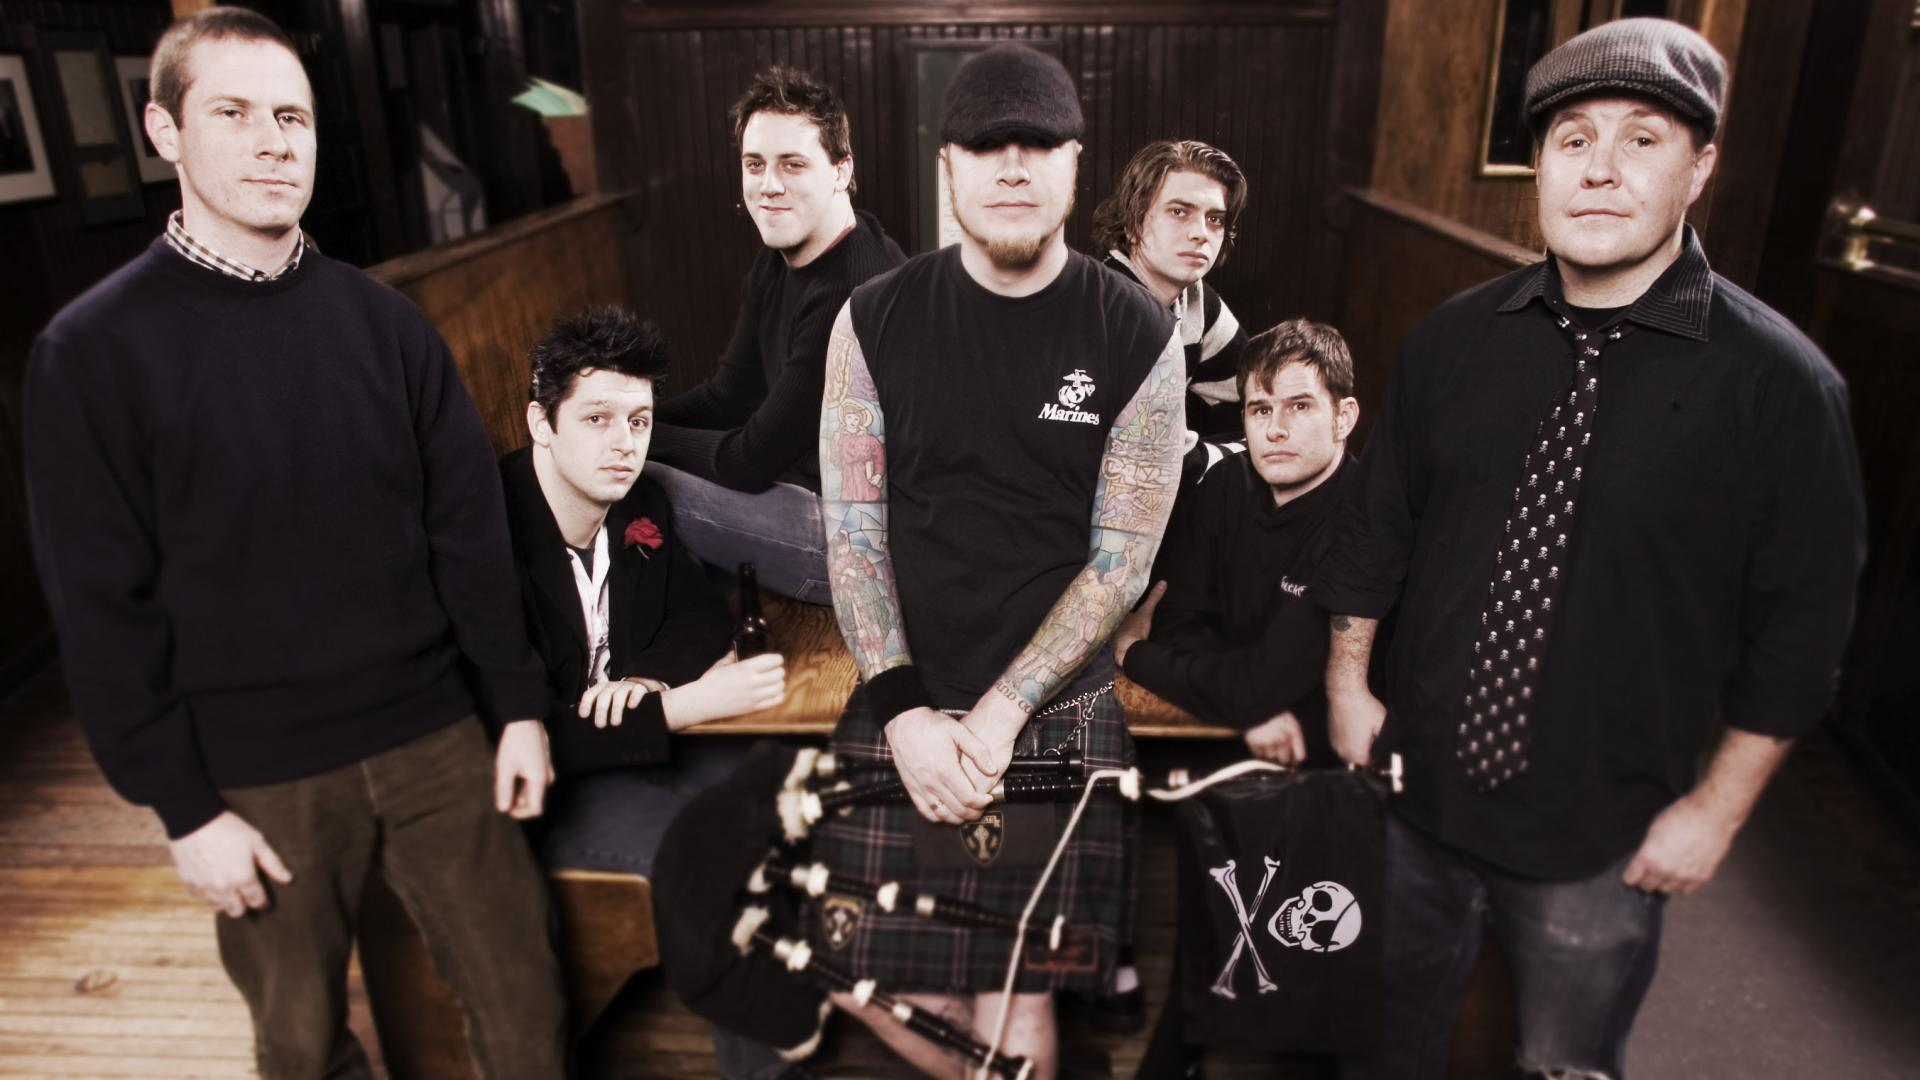 Dropkick Murphys Full Hd Wallpaper And Background Image